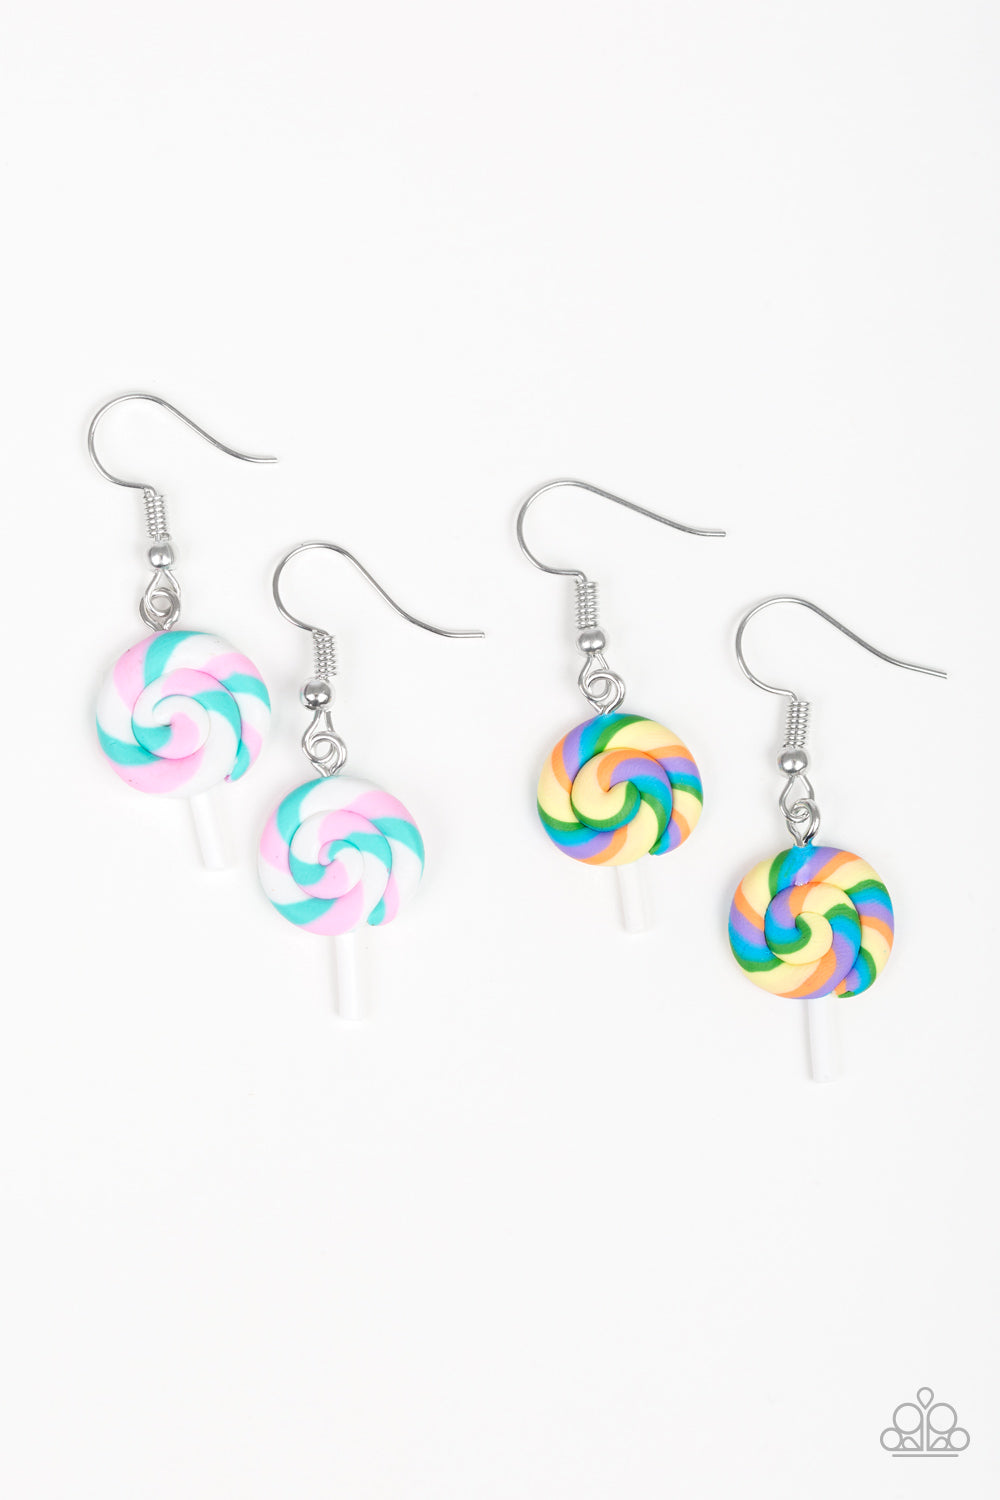 Lolipops - Paparazzi Starlet Shimmer Earring - Pink Dragon Jewels